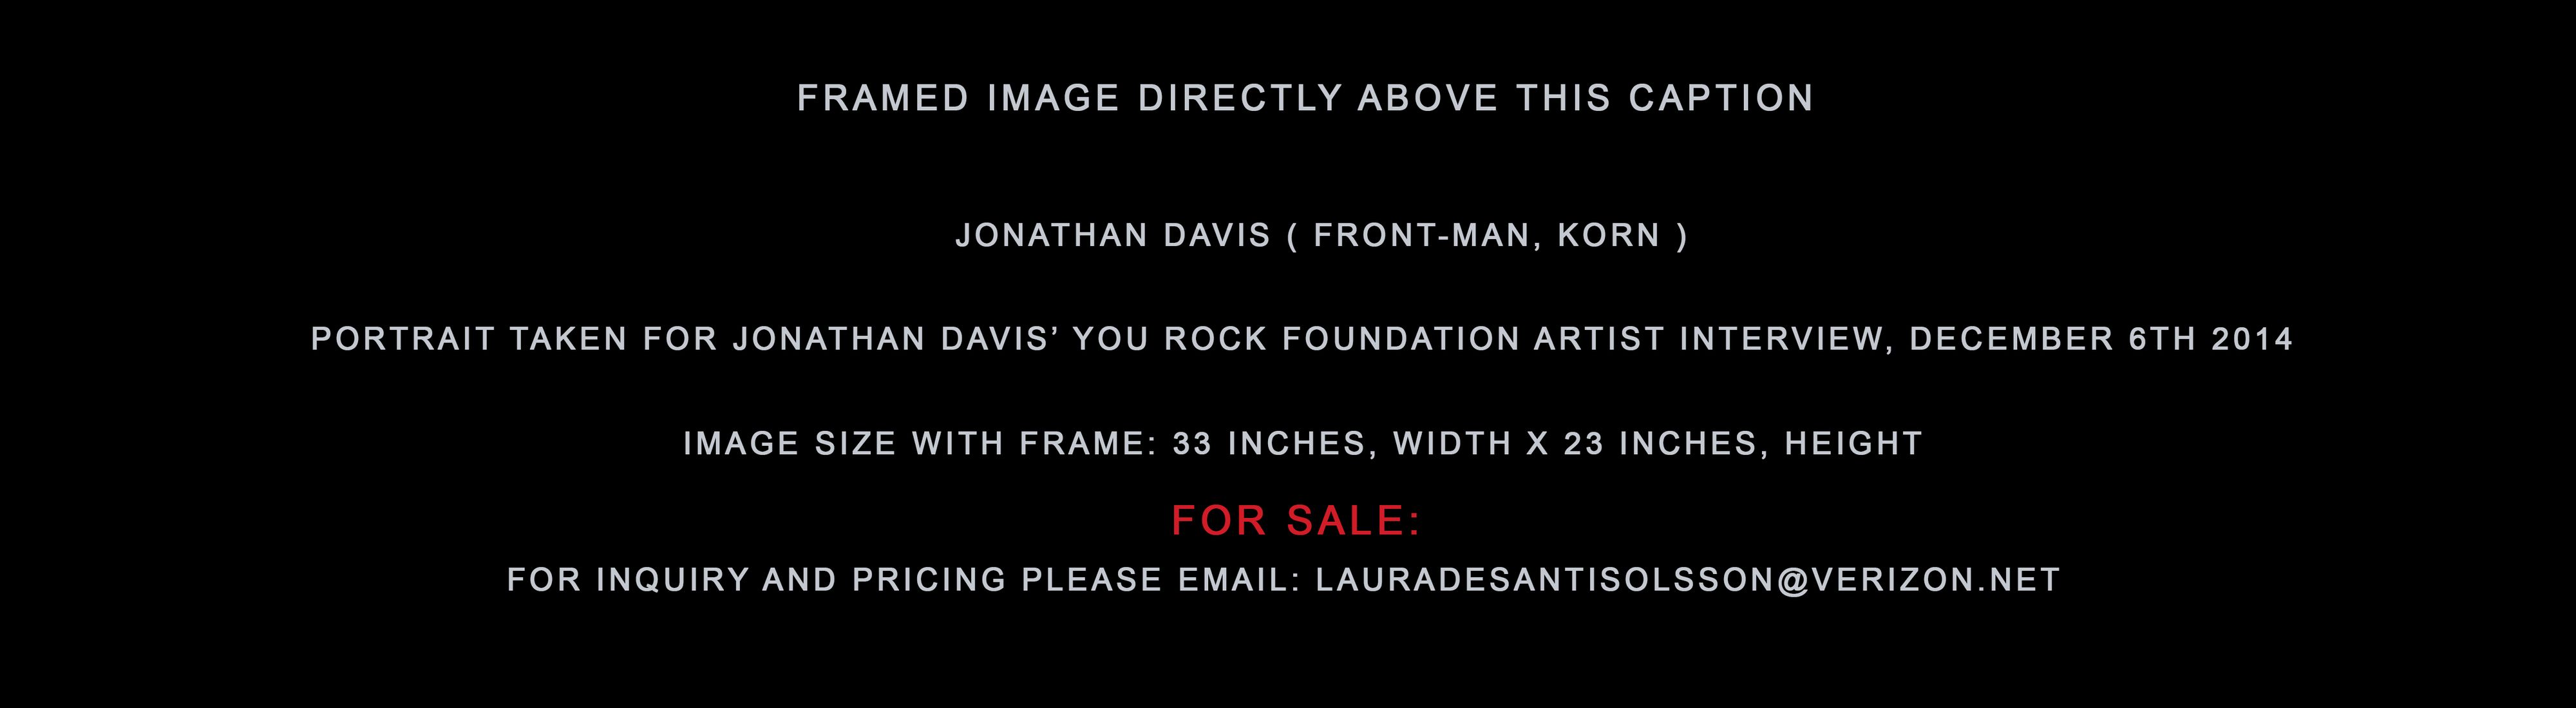 Jonathan_Davis_Info_Caption.jpg